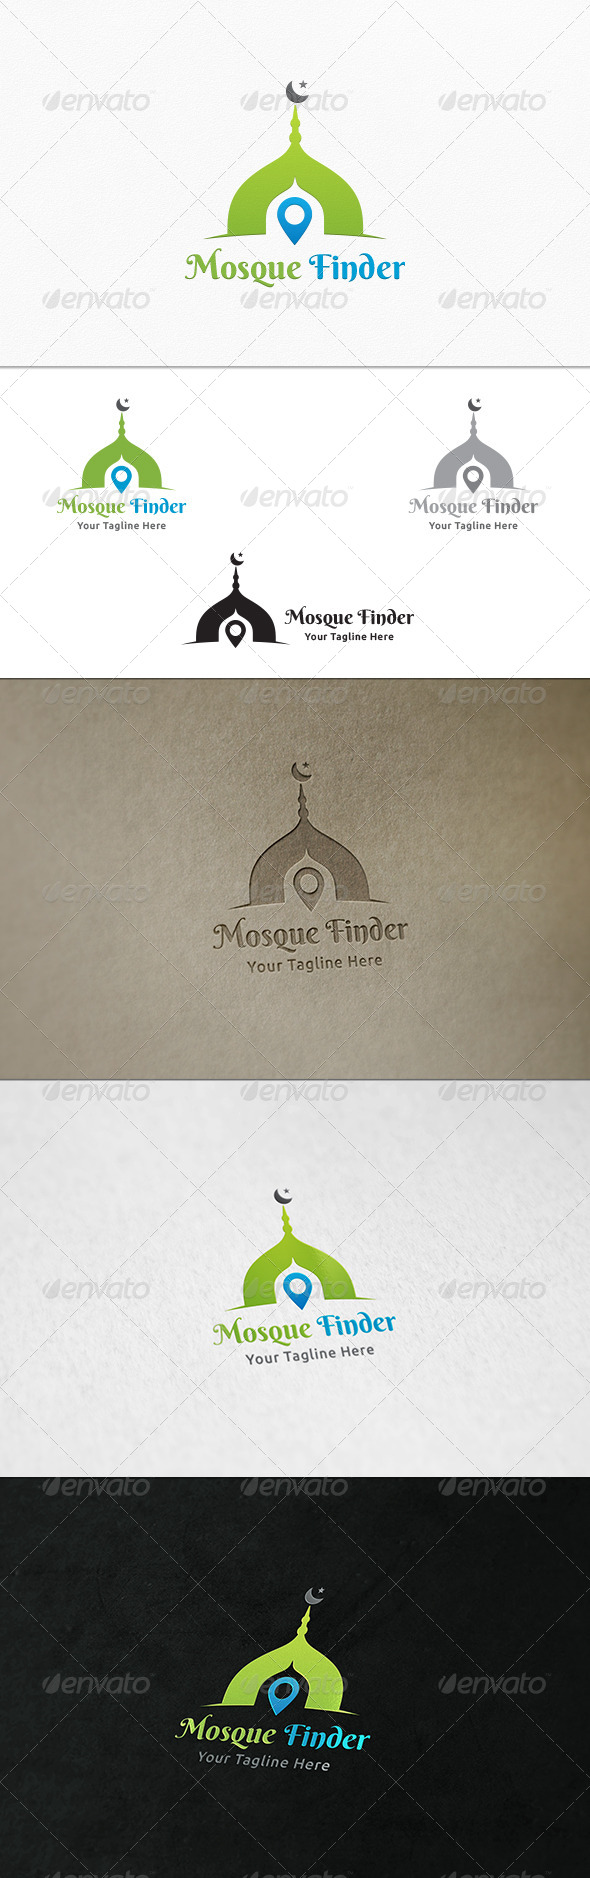 Mosque Finder - Logo Template - Buildings Logo Templates